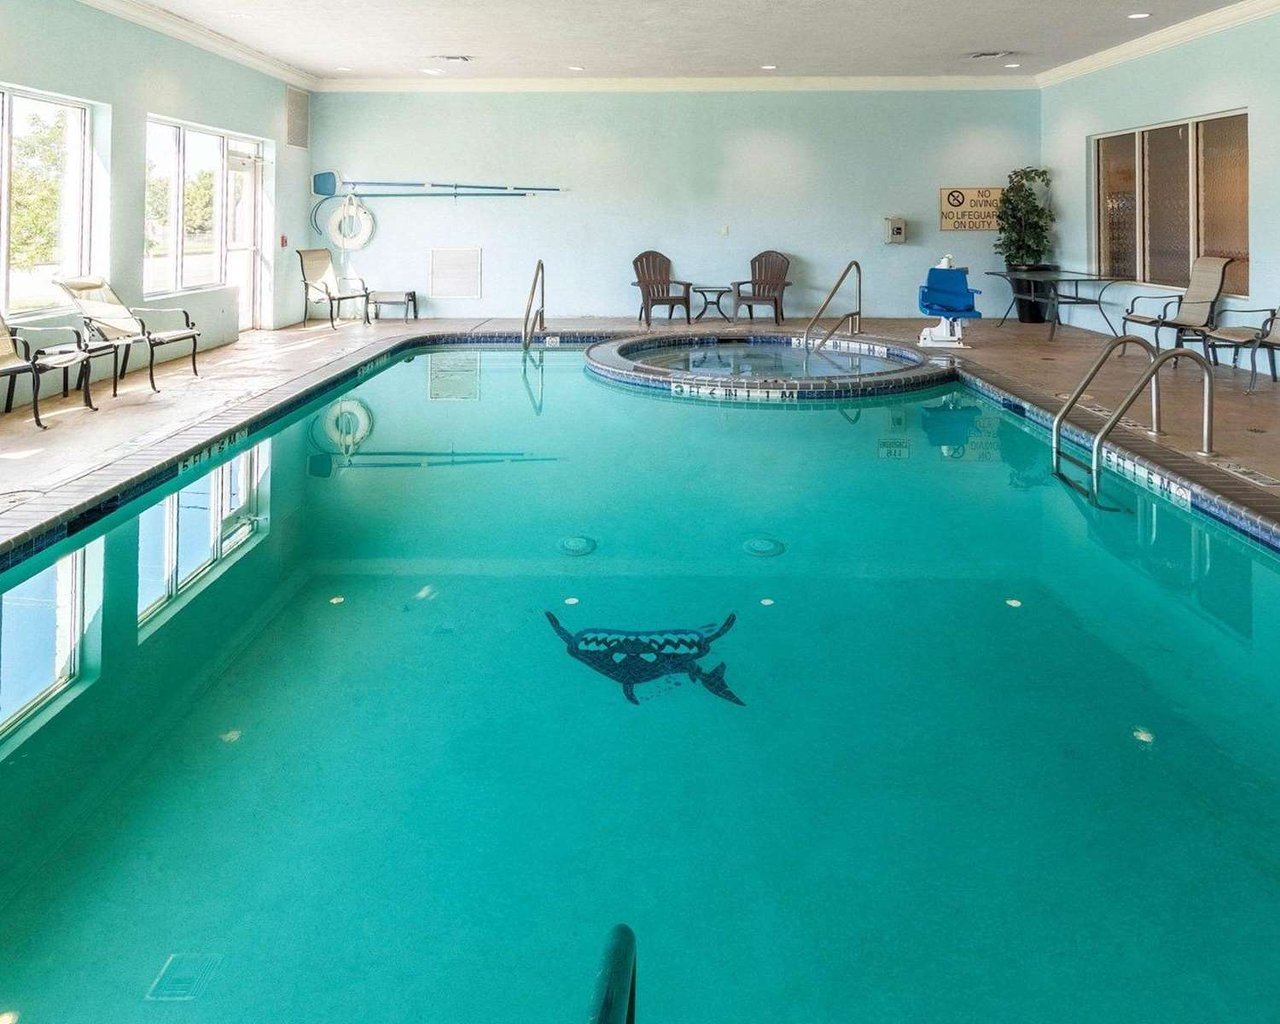 THE 10 BEST Hotels in Glen Rose, TX for 2019 (from $61